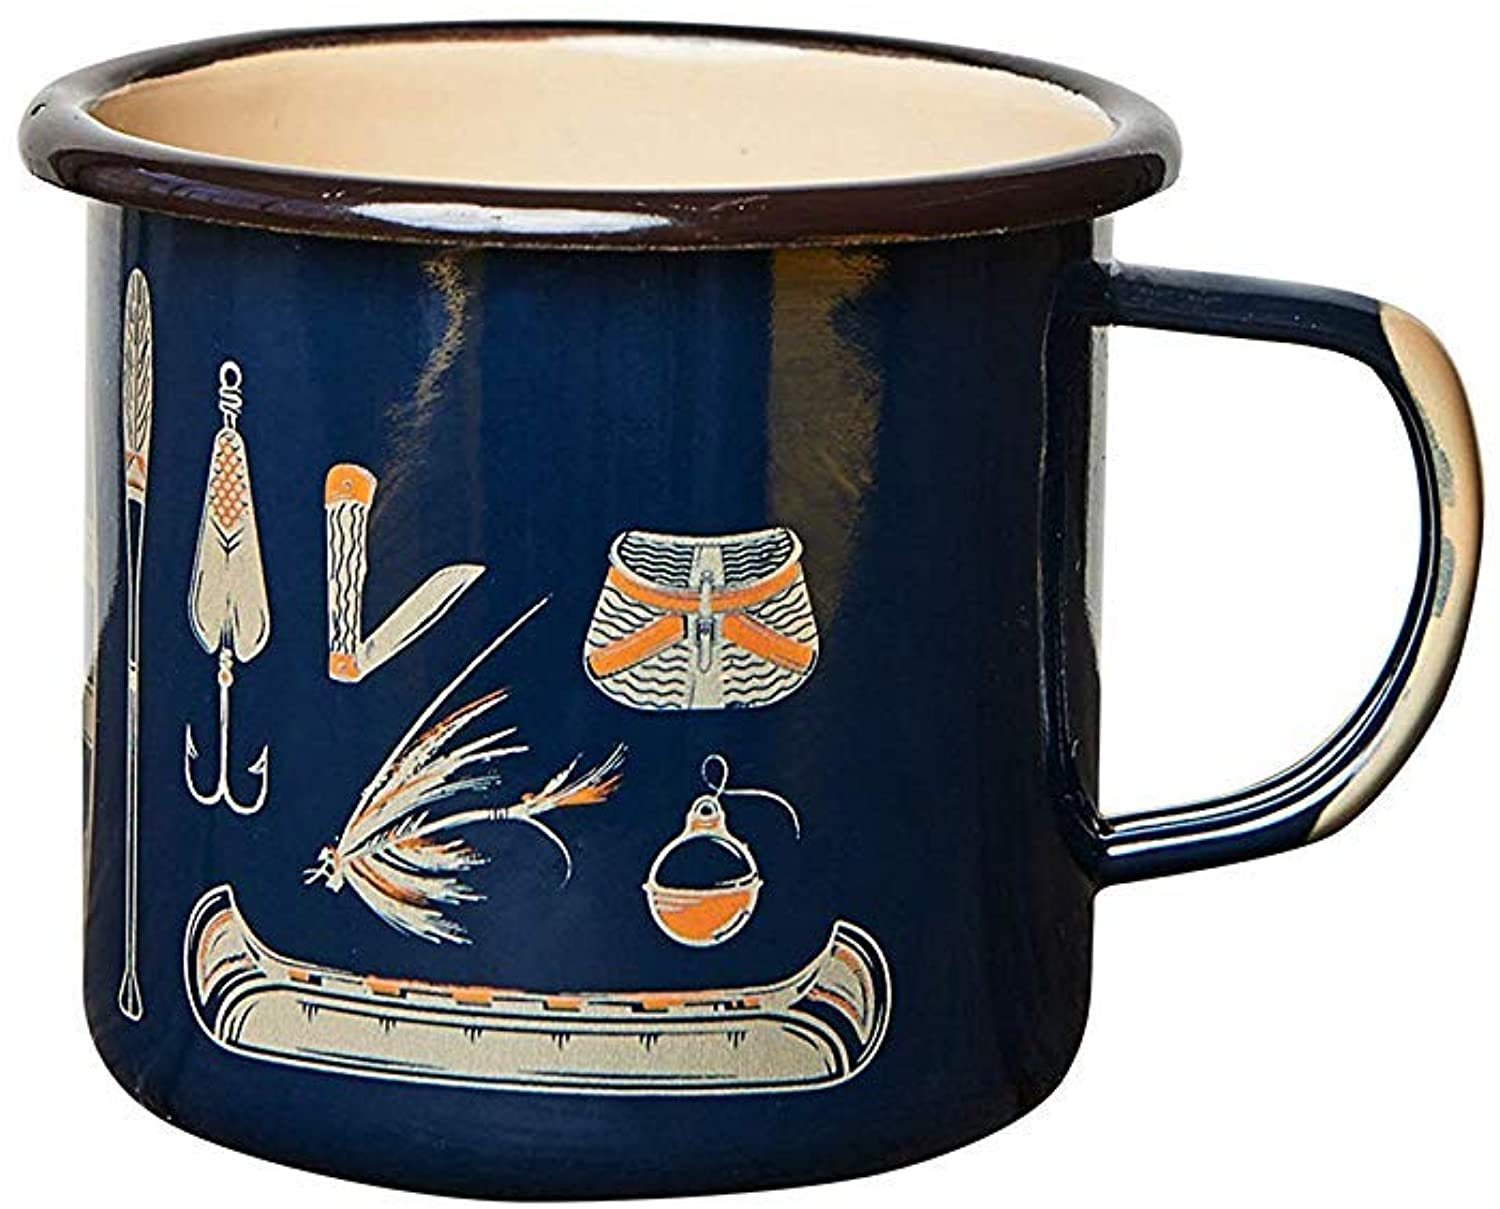 United By Blue - 12oz Enamel Steel Mug - Great for Coffee, Tea, Camping - Hand Dipped - Campfire and Stovetop Safe…